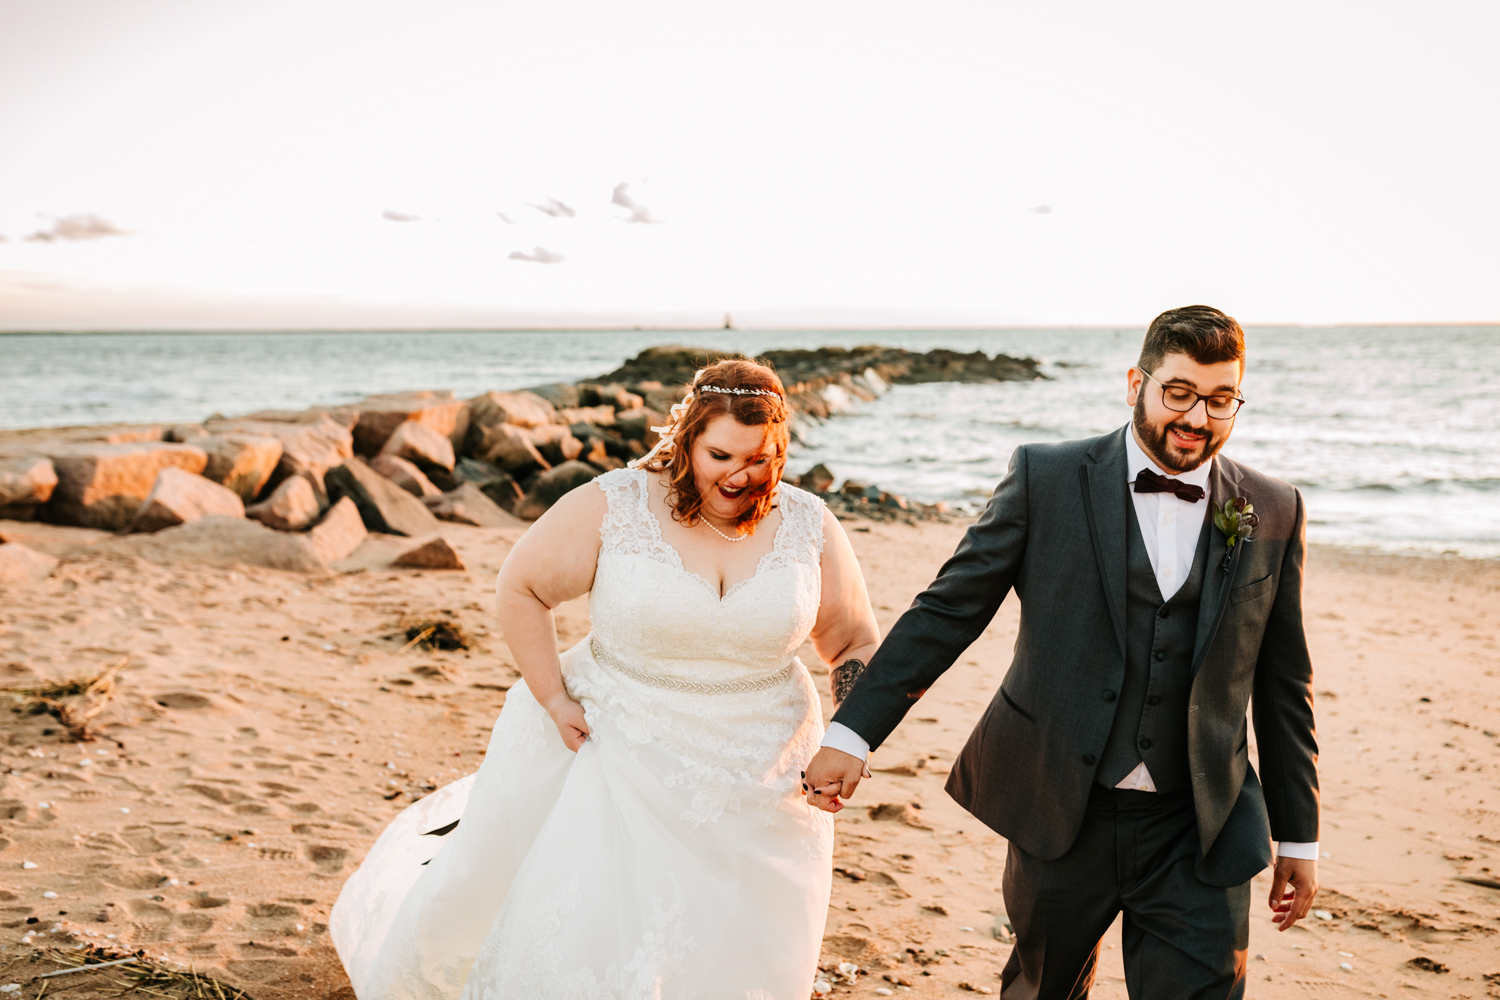 Red haired bride and groom walking along beach on wedding day